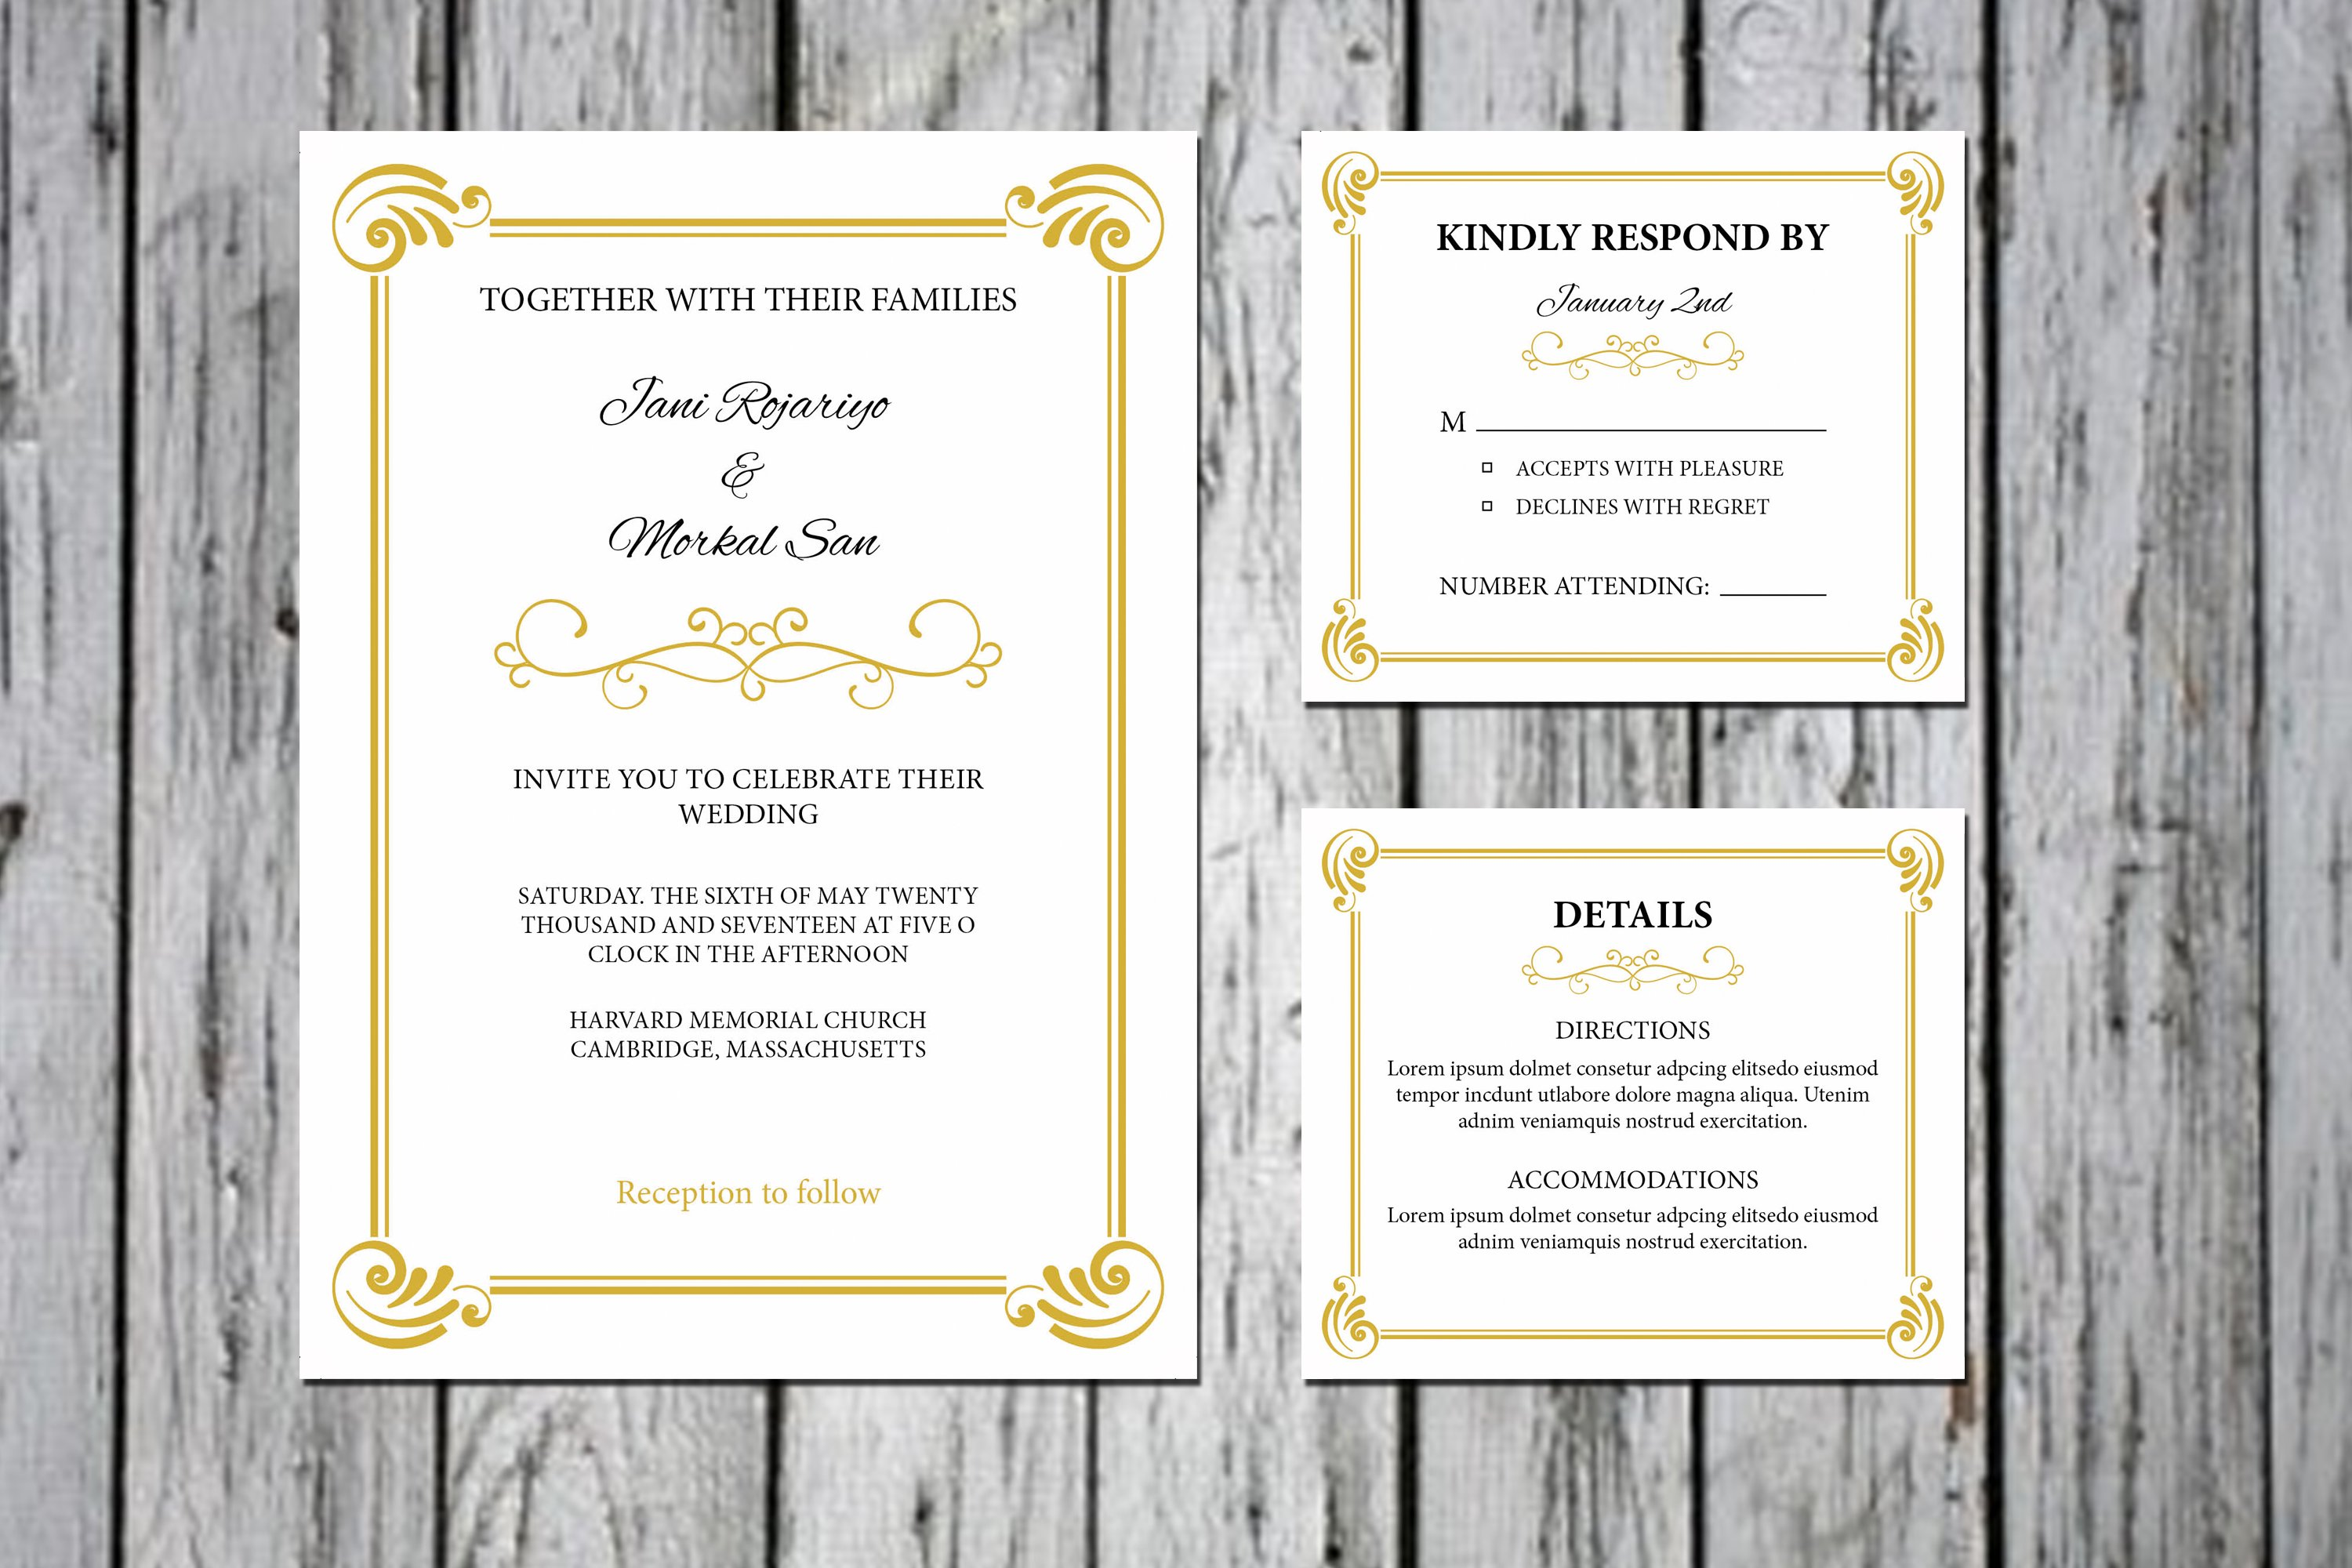 Free Samples Wedding Invitations: Wedding Invitation Template